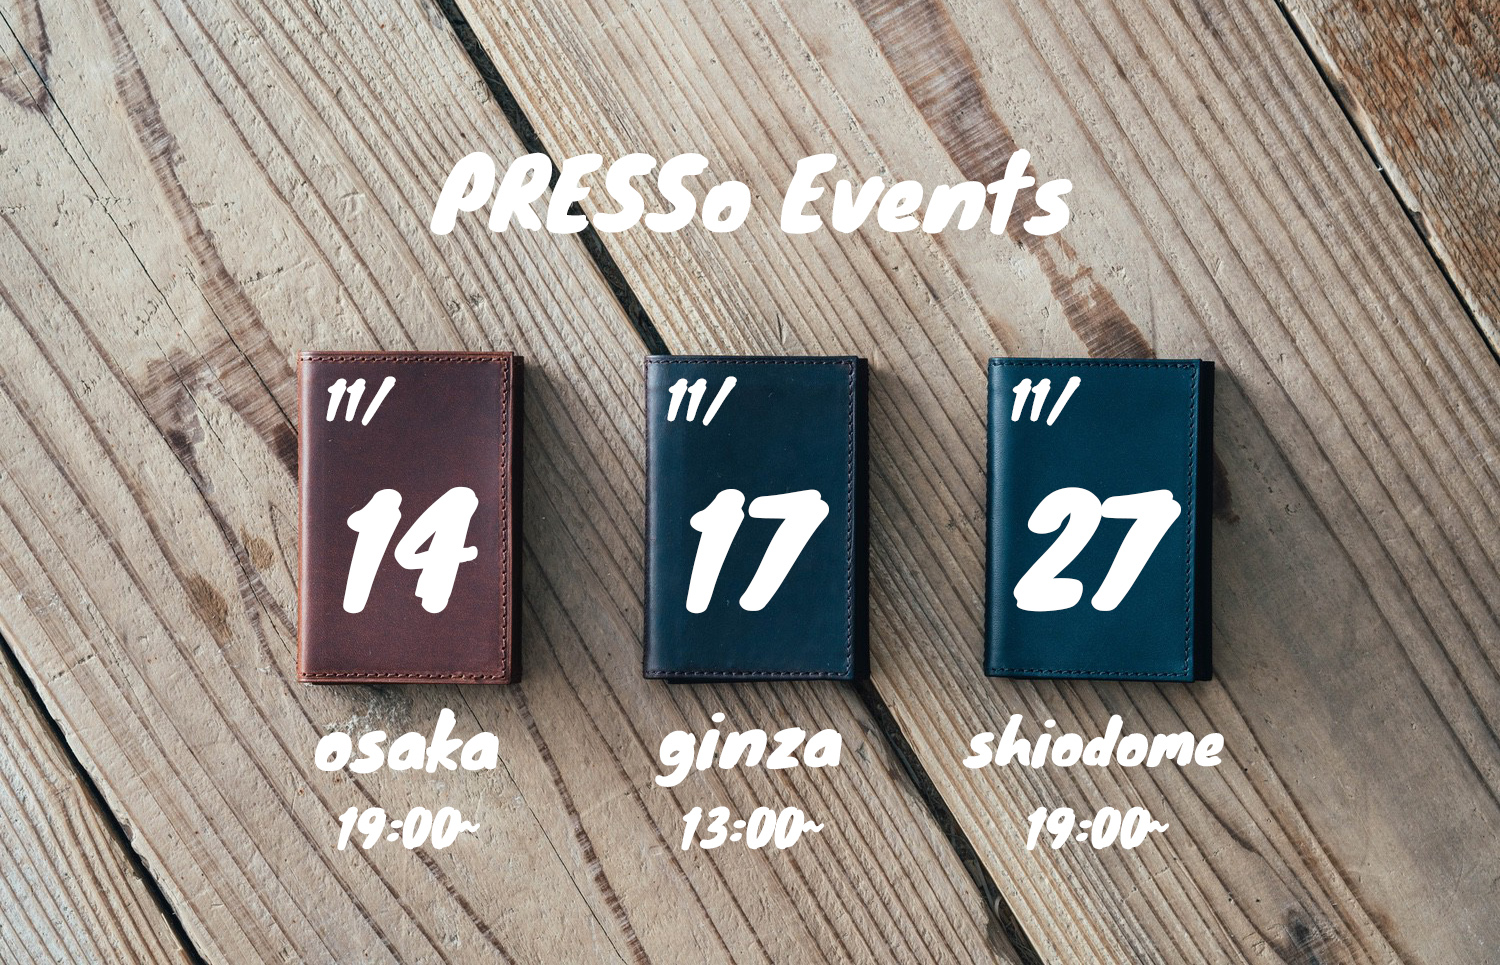 Pressoevents